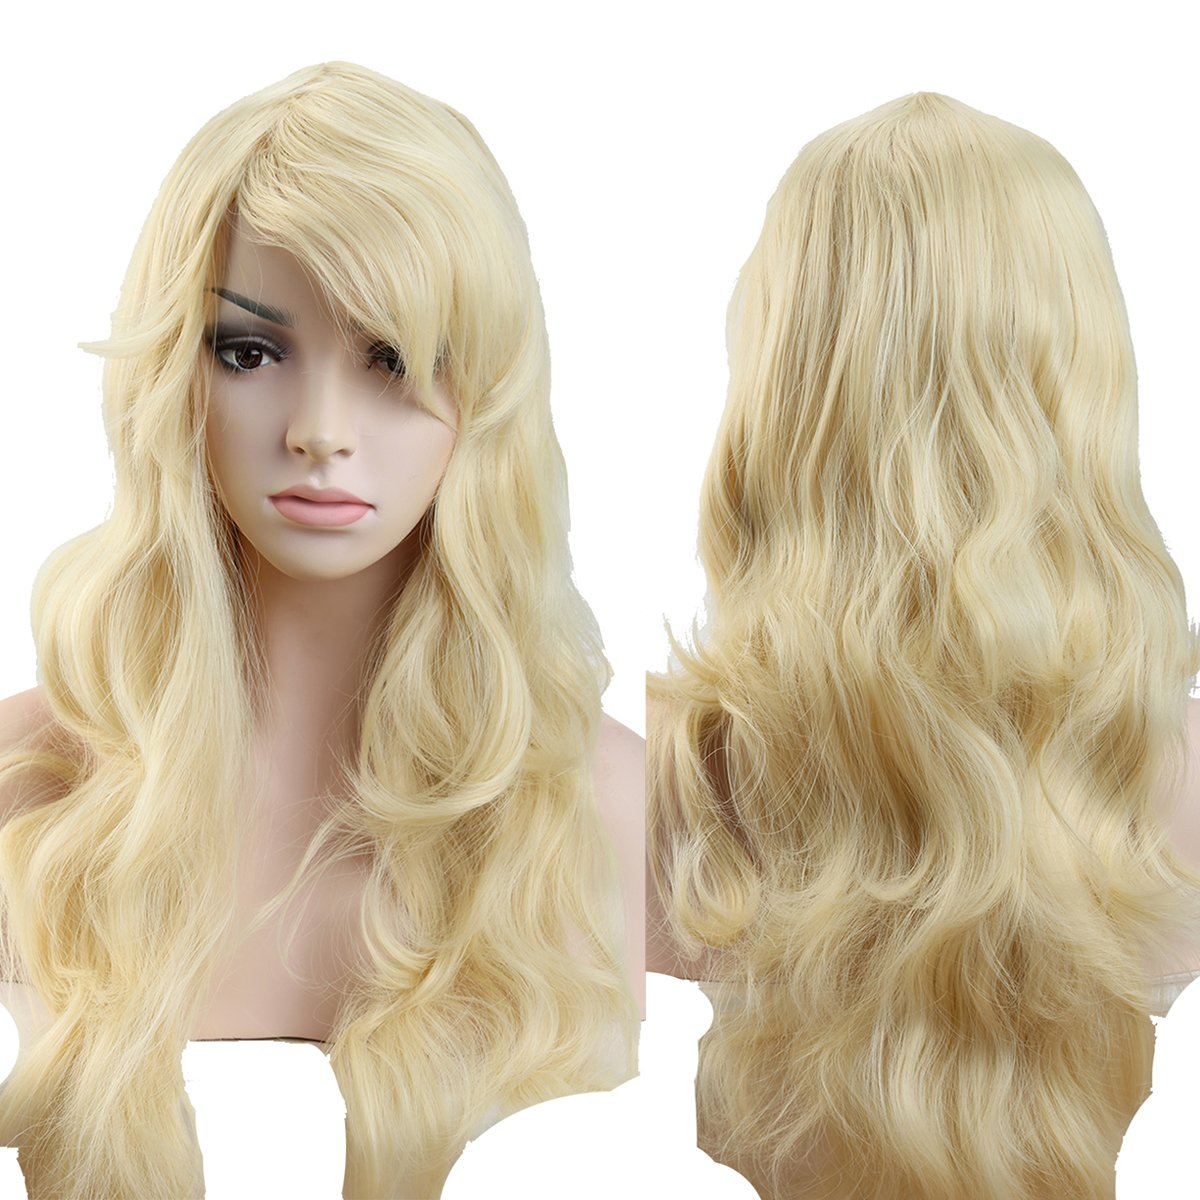 S-noilite Women's Straight Full Wig 24' Long Natural Black Hair Wig Elegant Lady Party Daily Dress